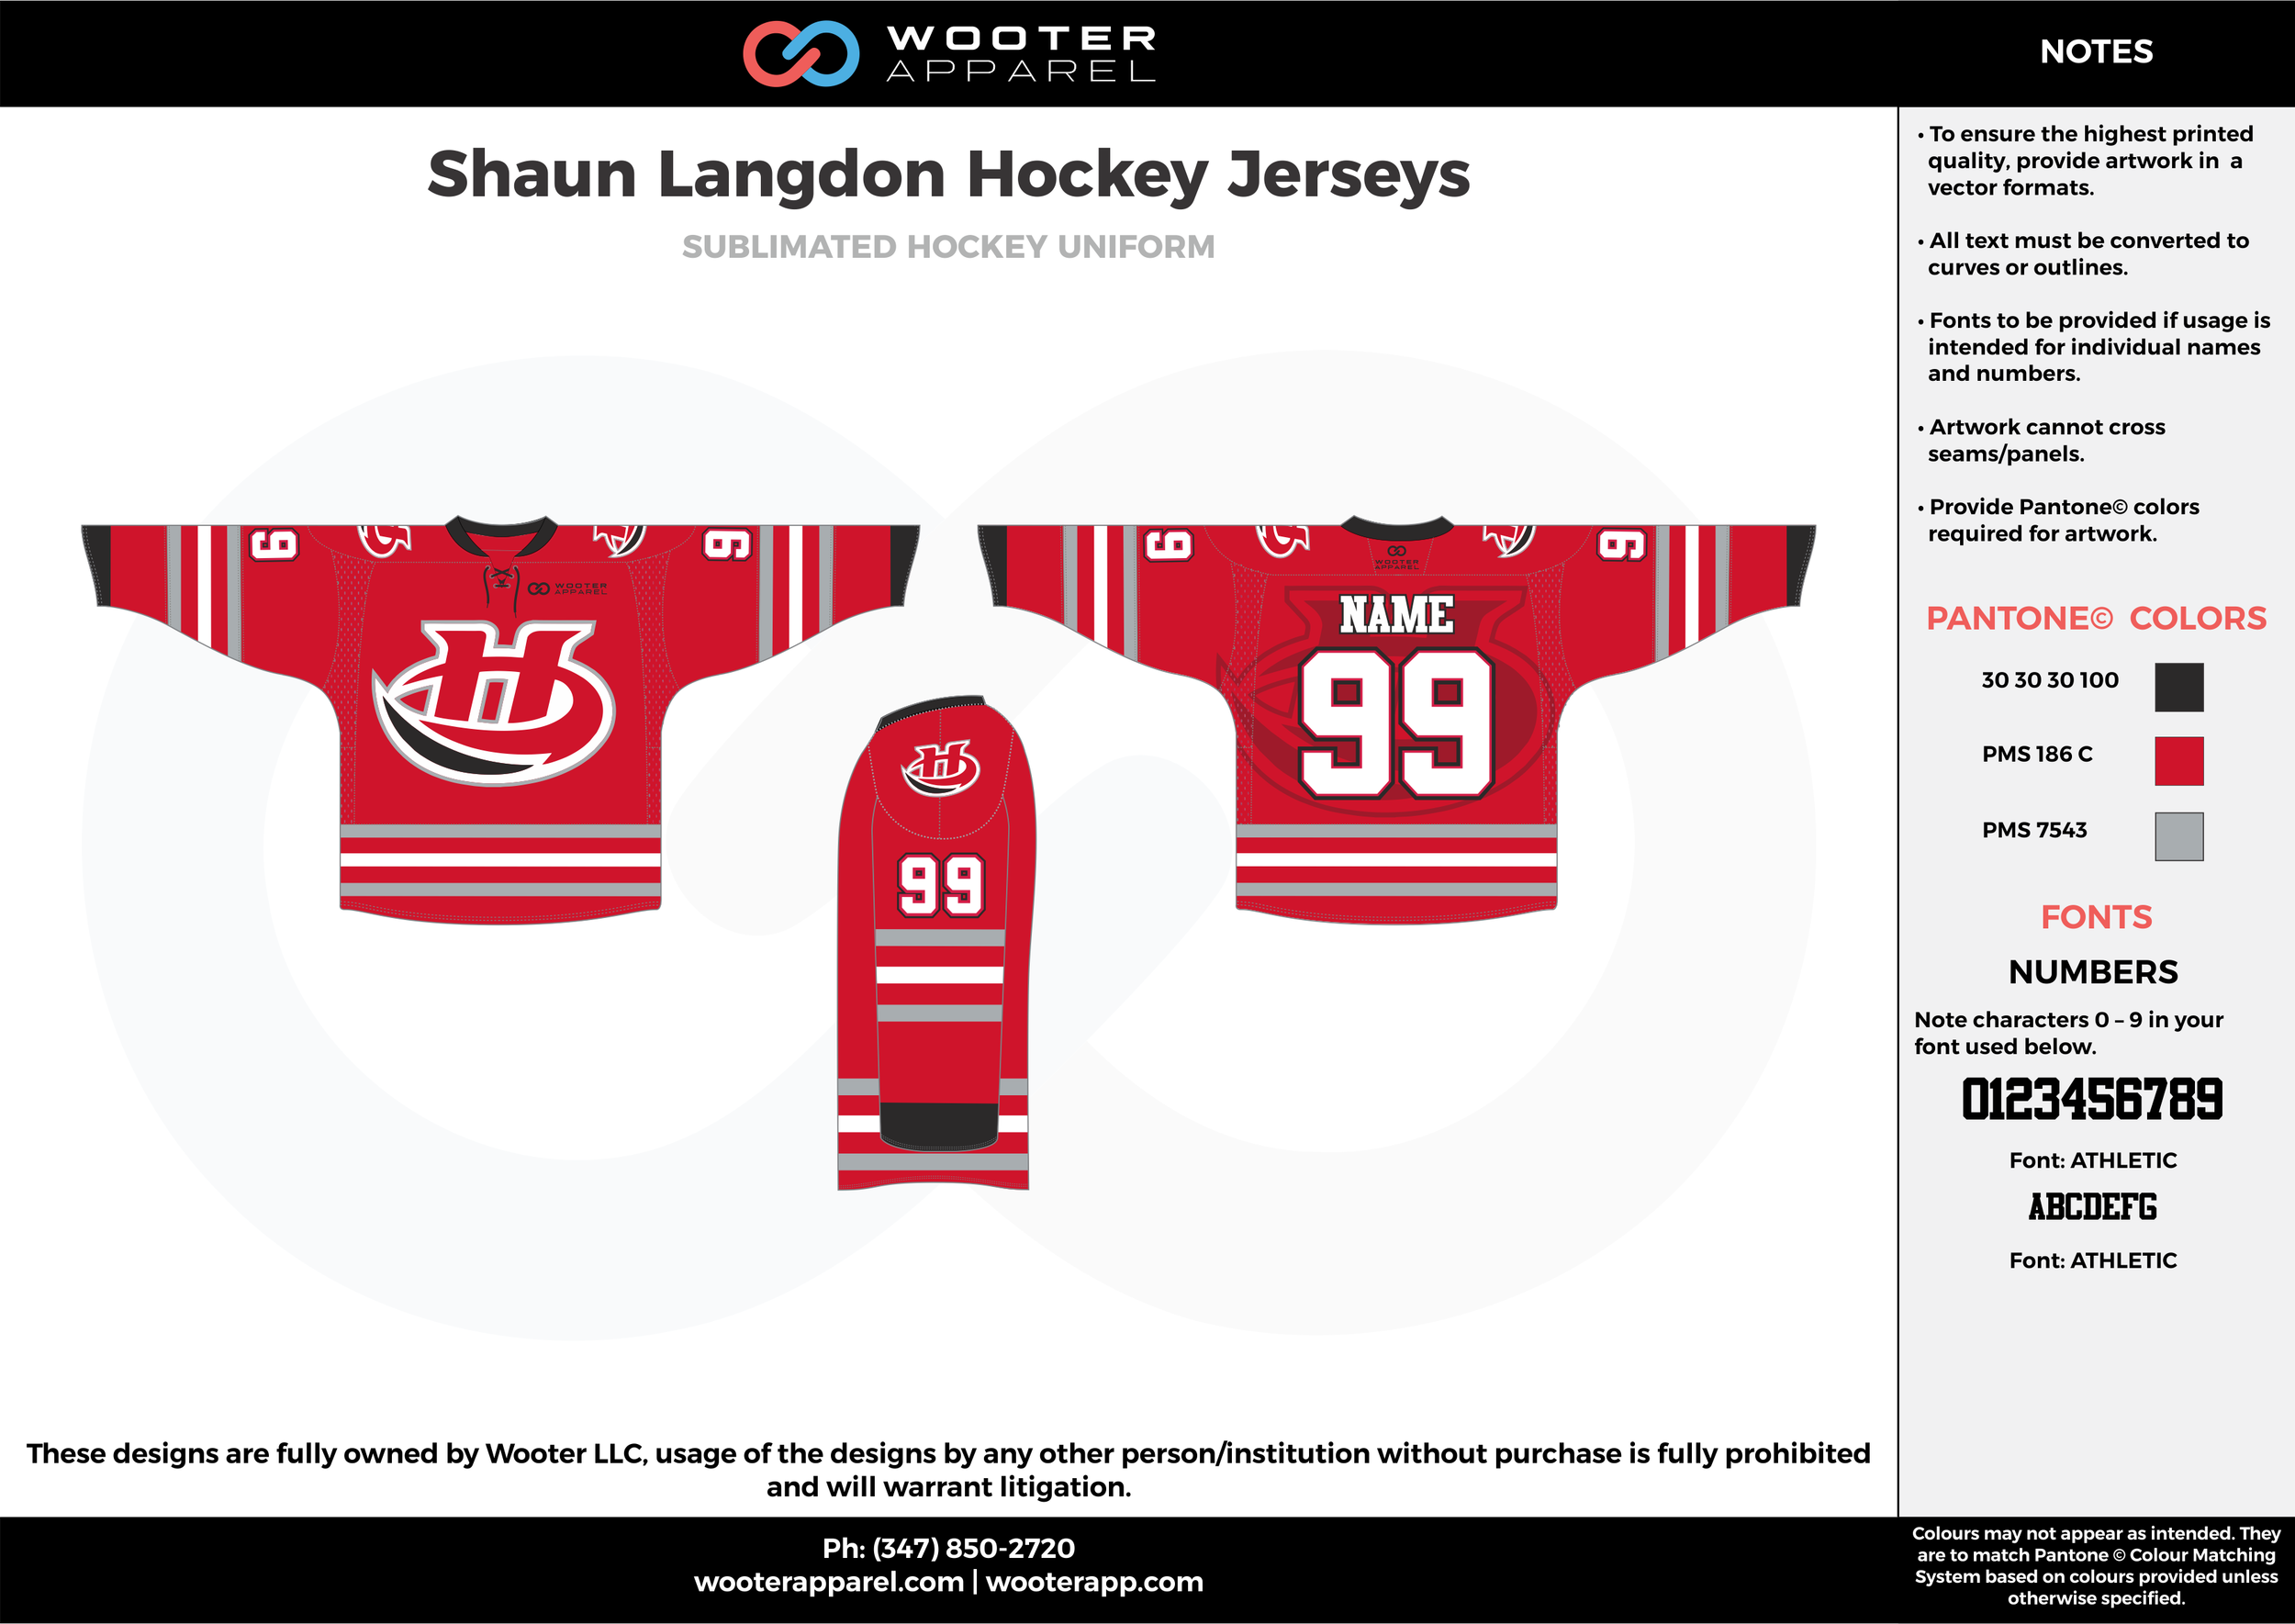 Shaun Langdon Hockey Jerseys red black gray white hockey uniforms jerseys socks